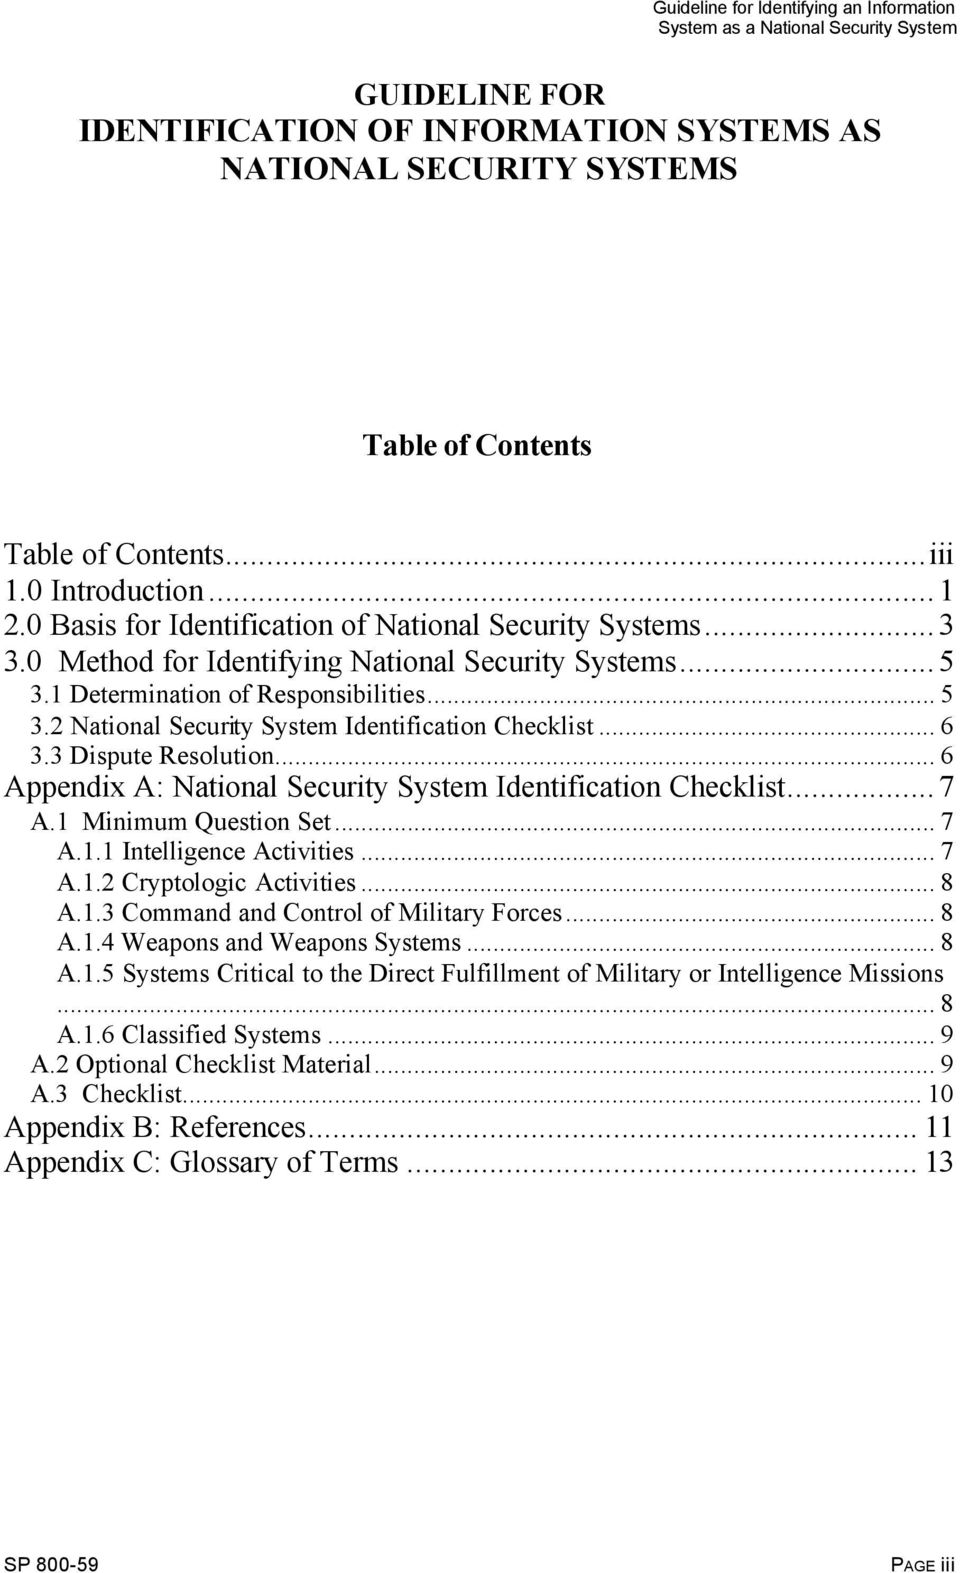 2 National Security System Identification Checklist... 6 3.3 Dispute Resolution... 6 Appendix A: National Security System Identification Checklist...7 A.1 Minimum Question Set... 7 A.1.1 Intelligence Activities.